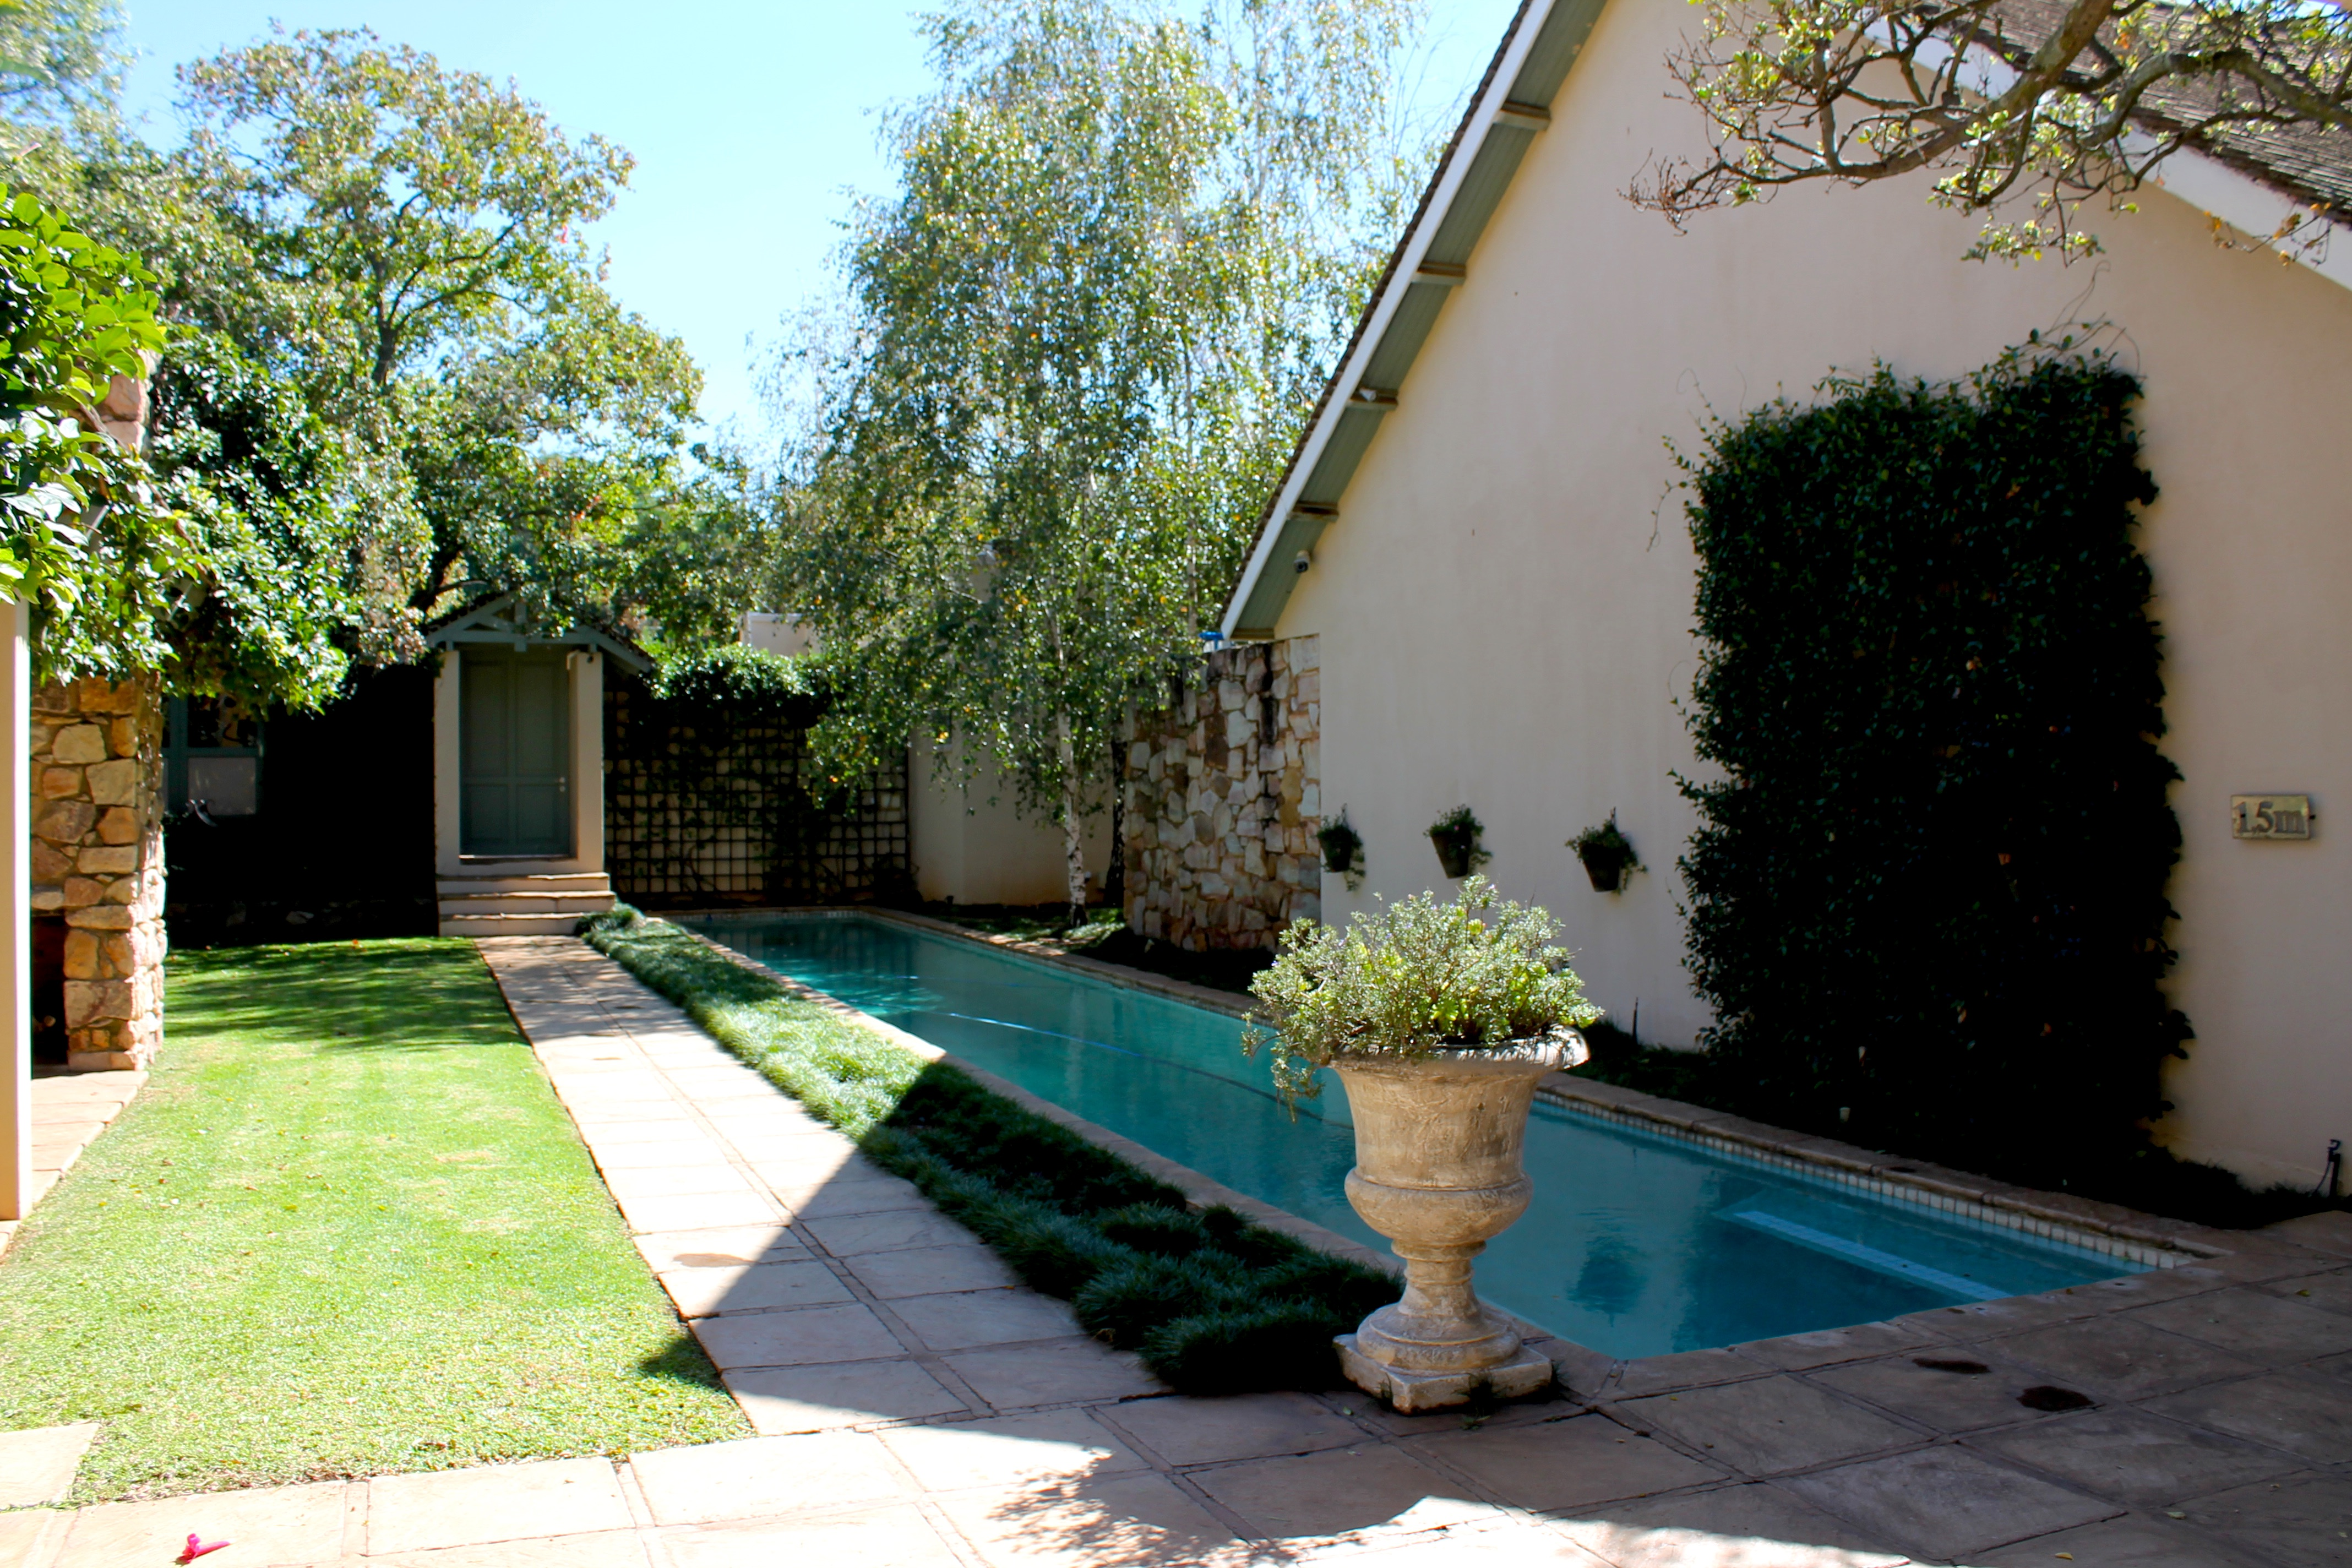 parwood-hotel-pool-johannesburg-lustforthesublime